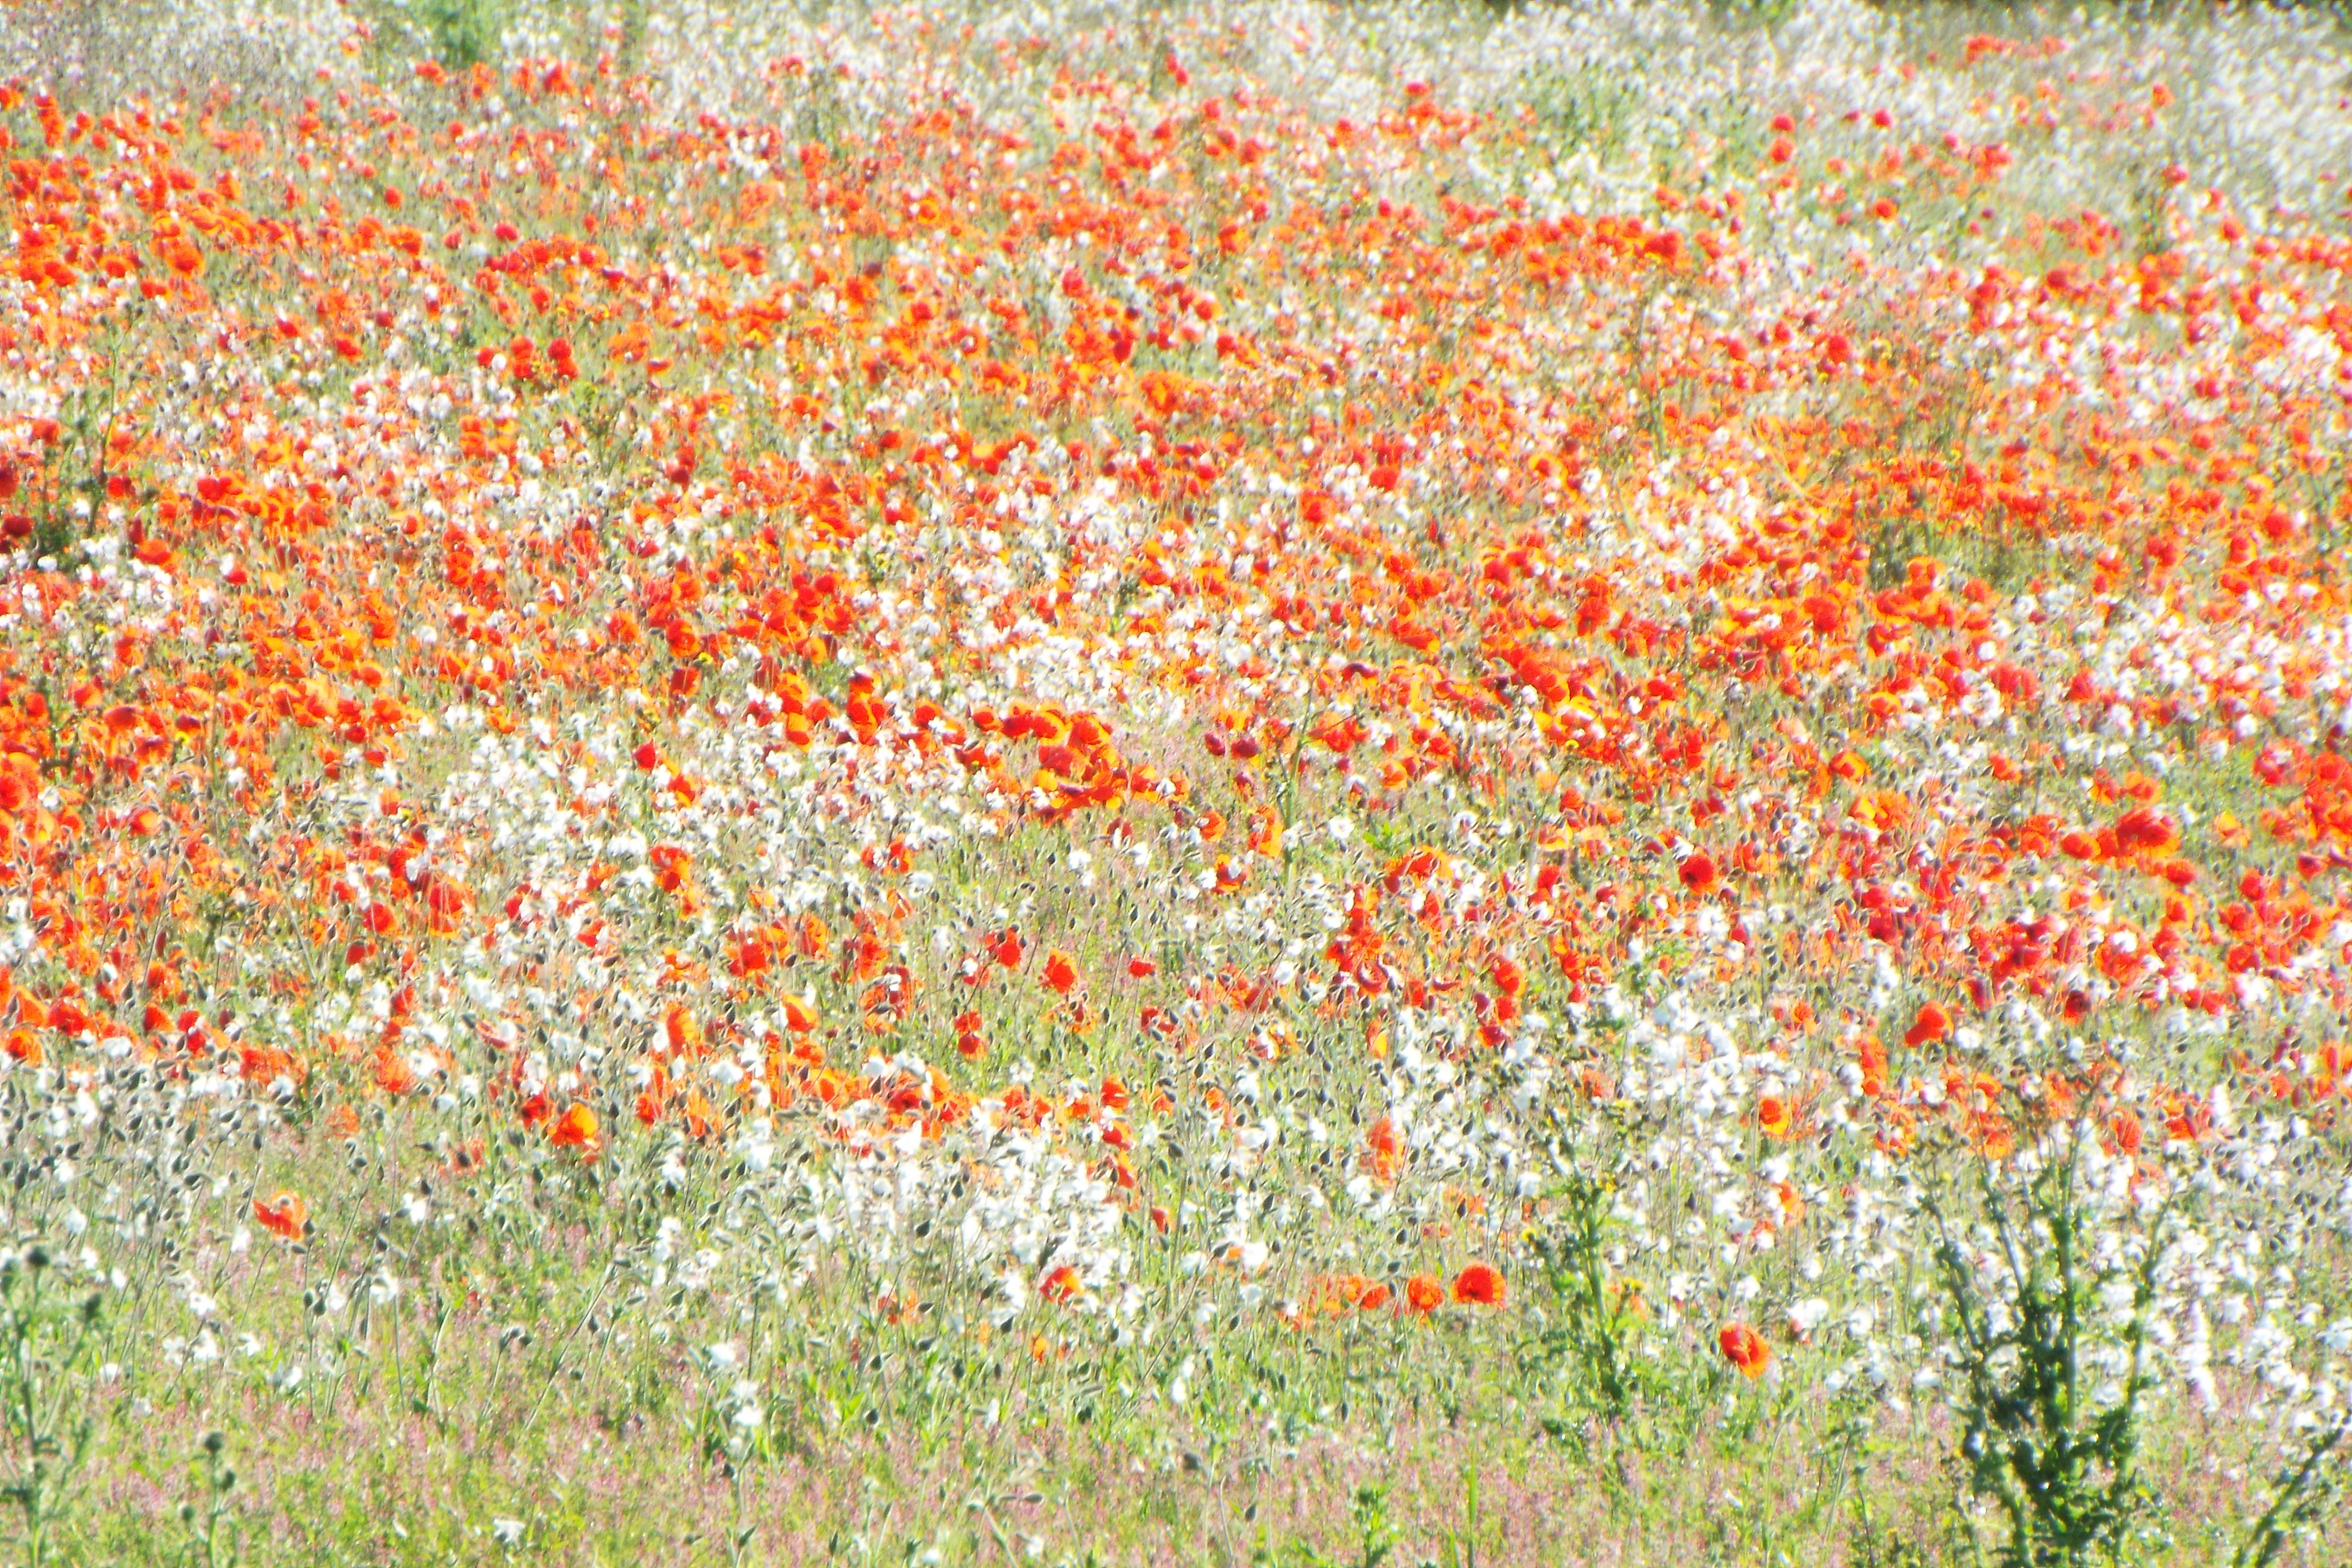 A vast field of white and red flowers